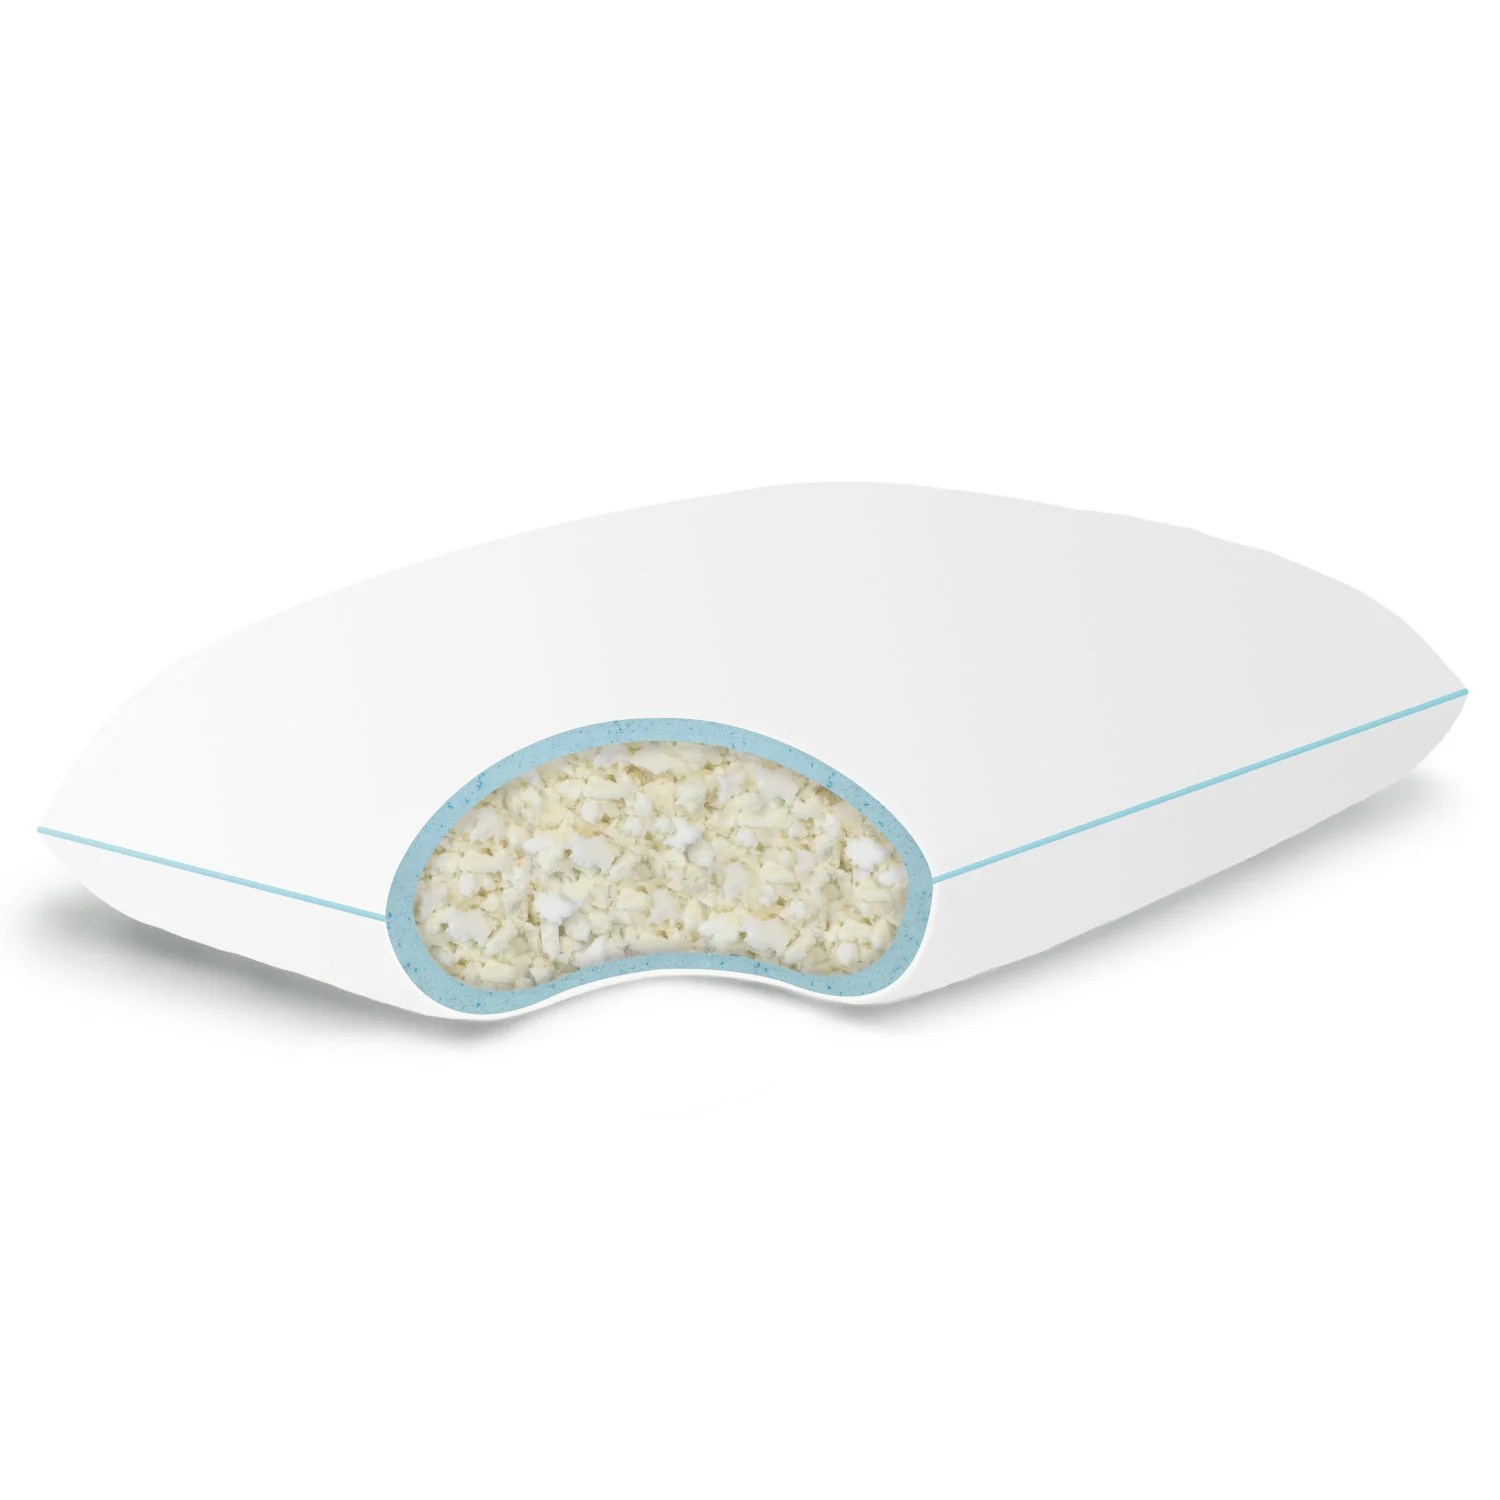 Gel Infused Memory Foam Pillow Details About Gel Infused Shredded Memory Foam Pillow